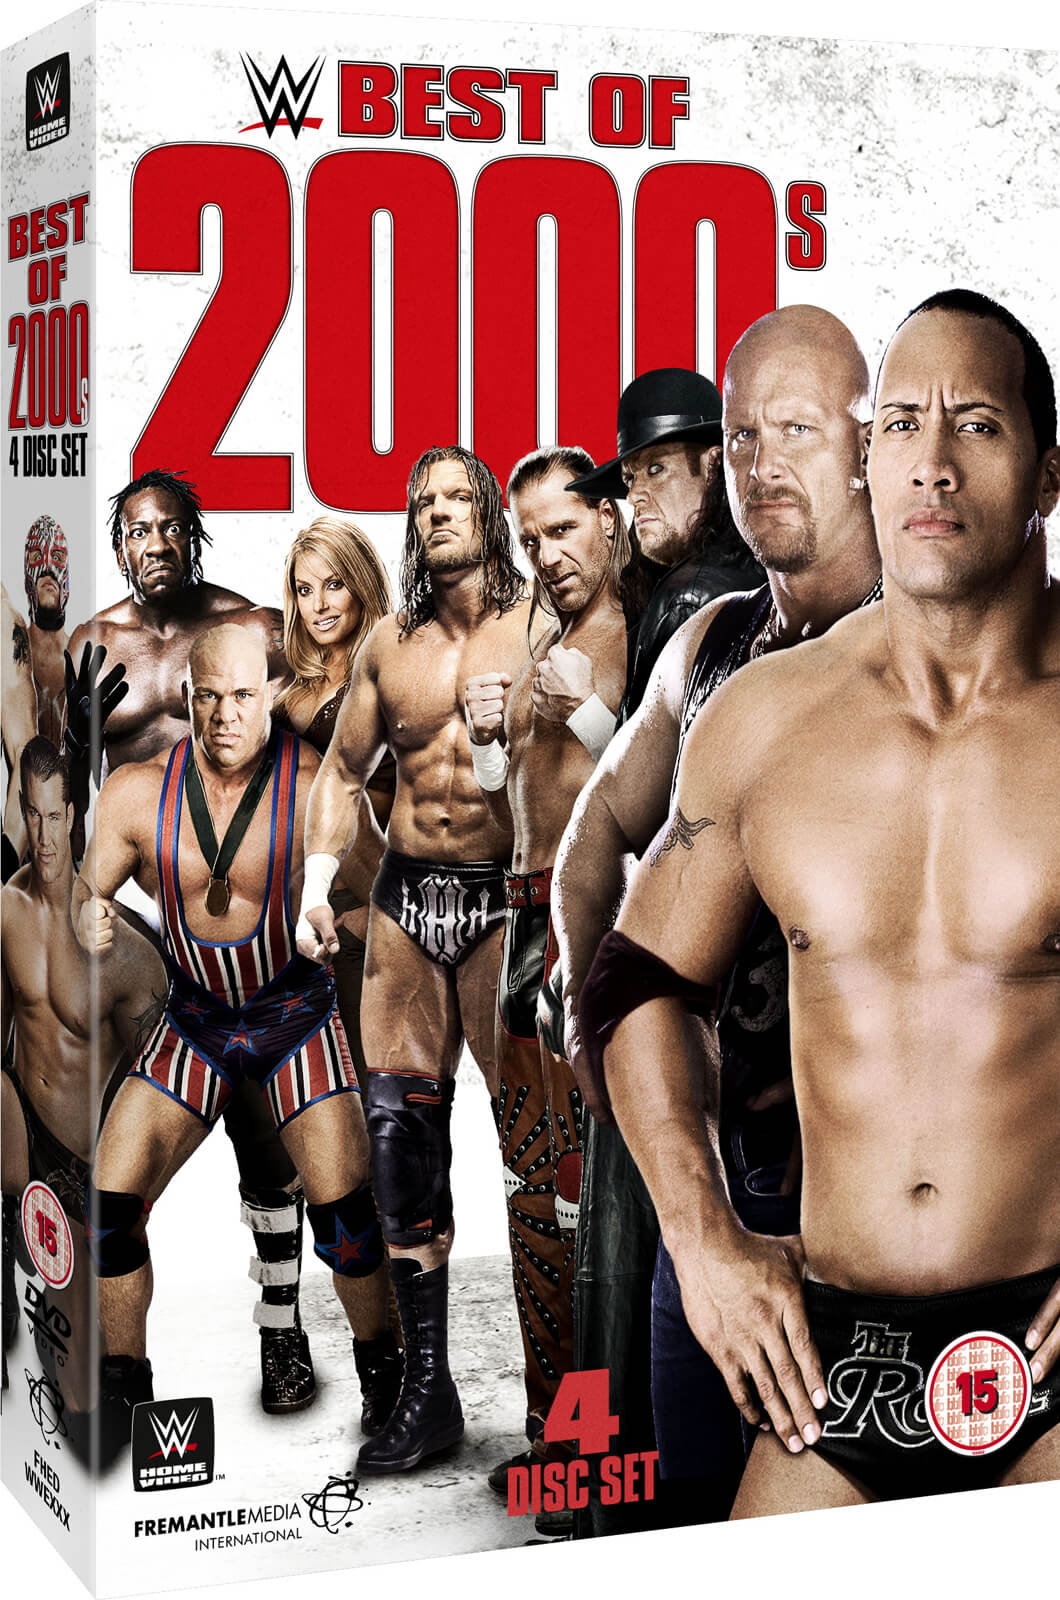 WWE: WWE Best Of 2000